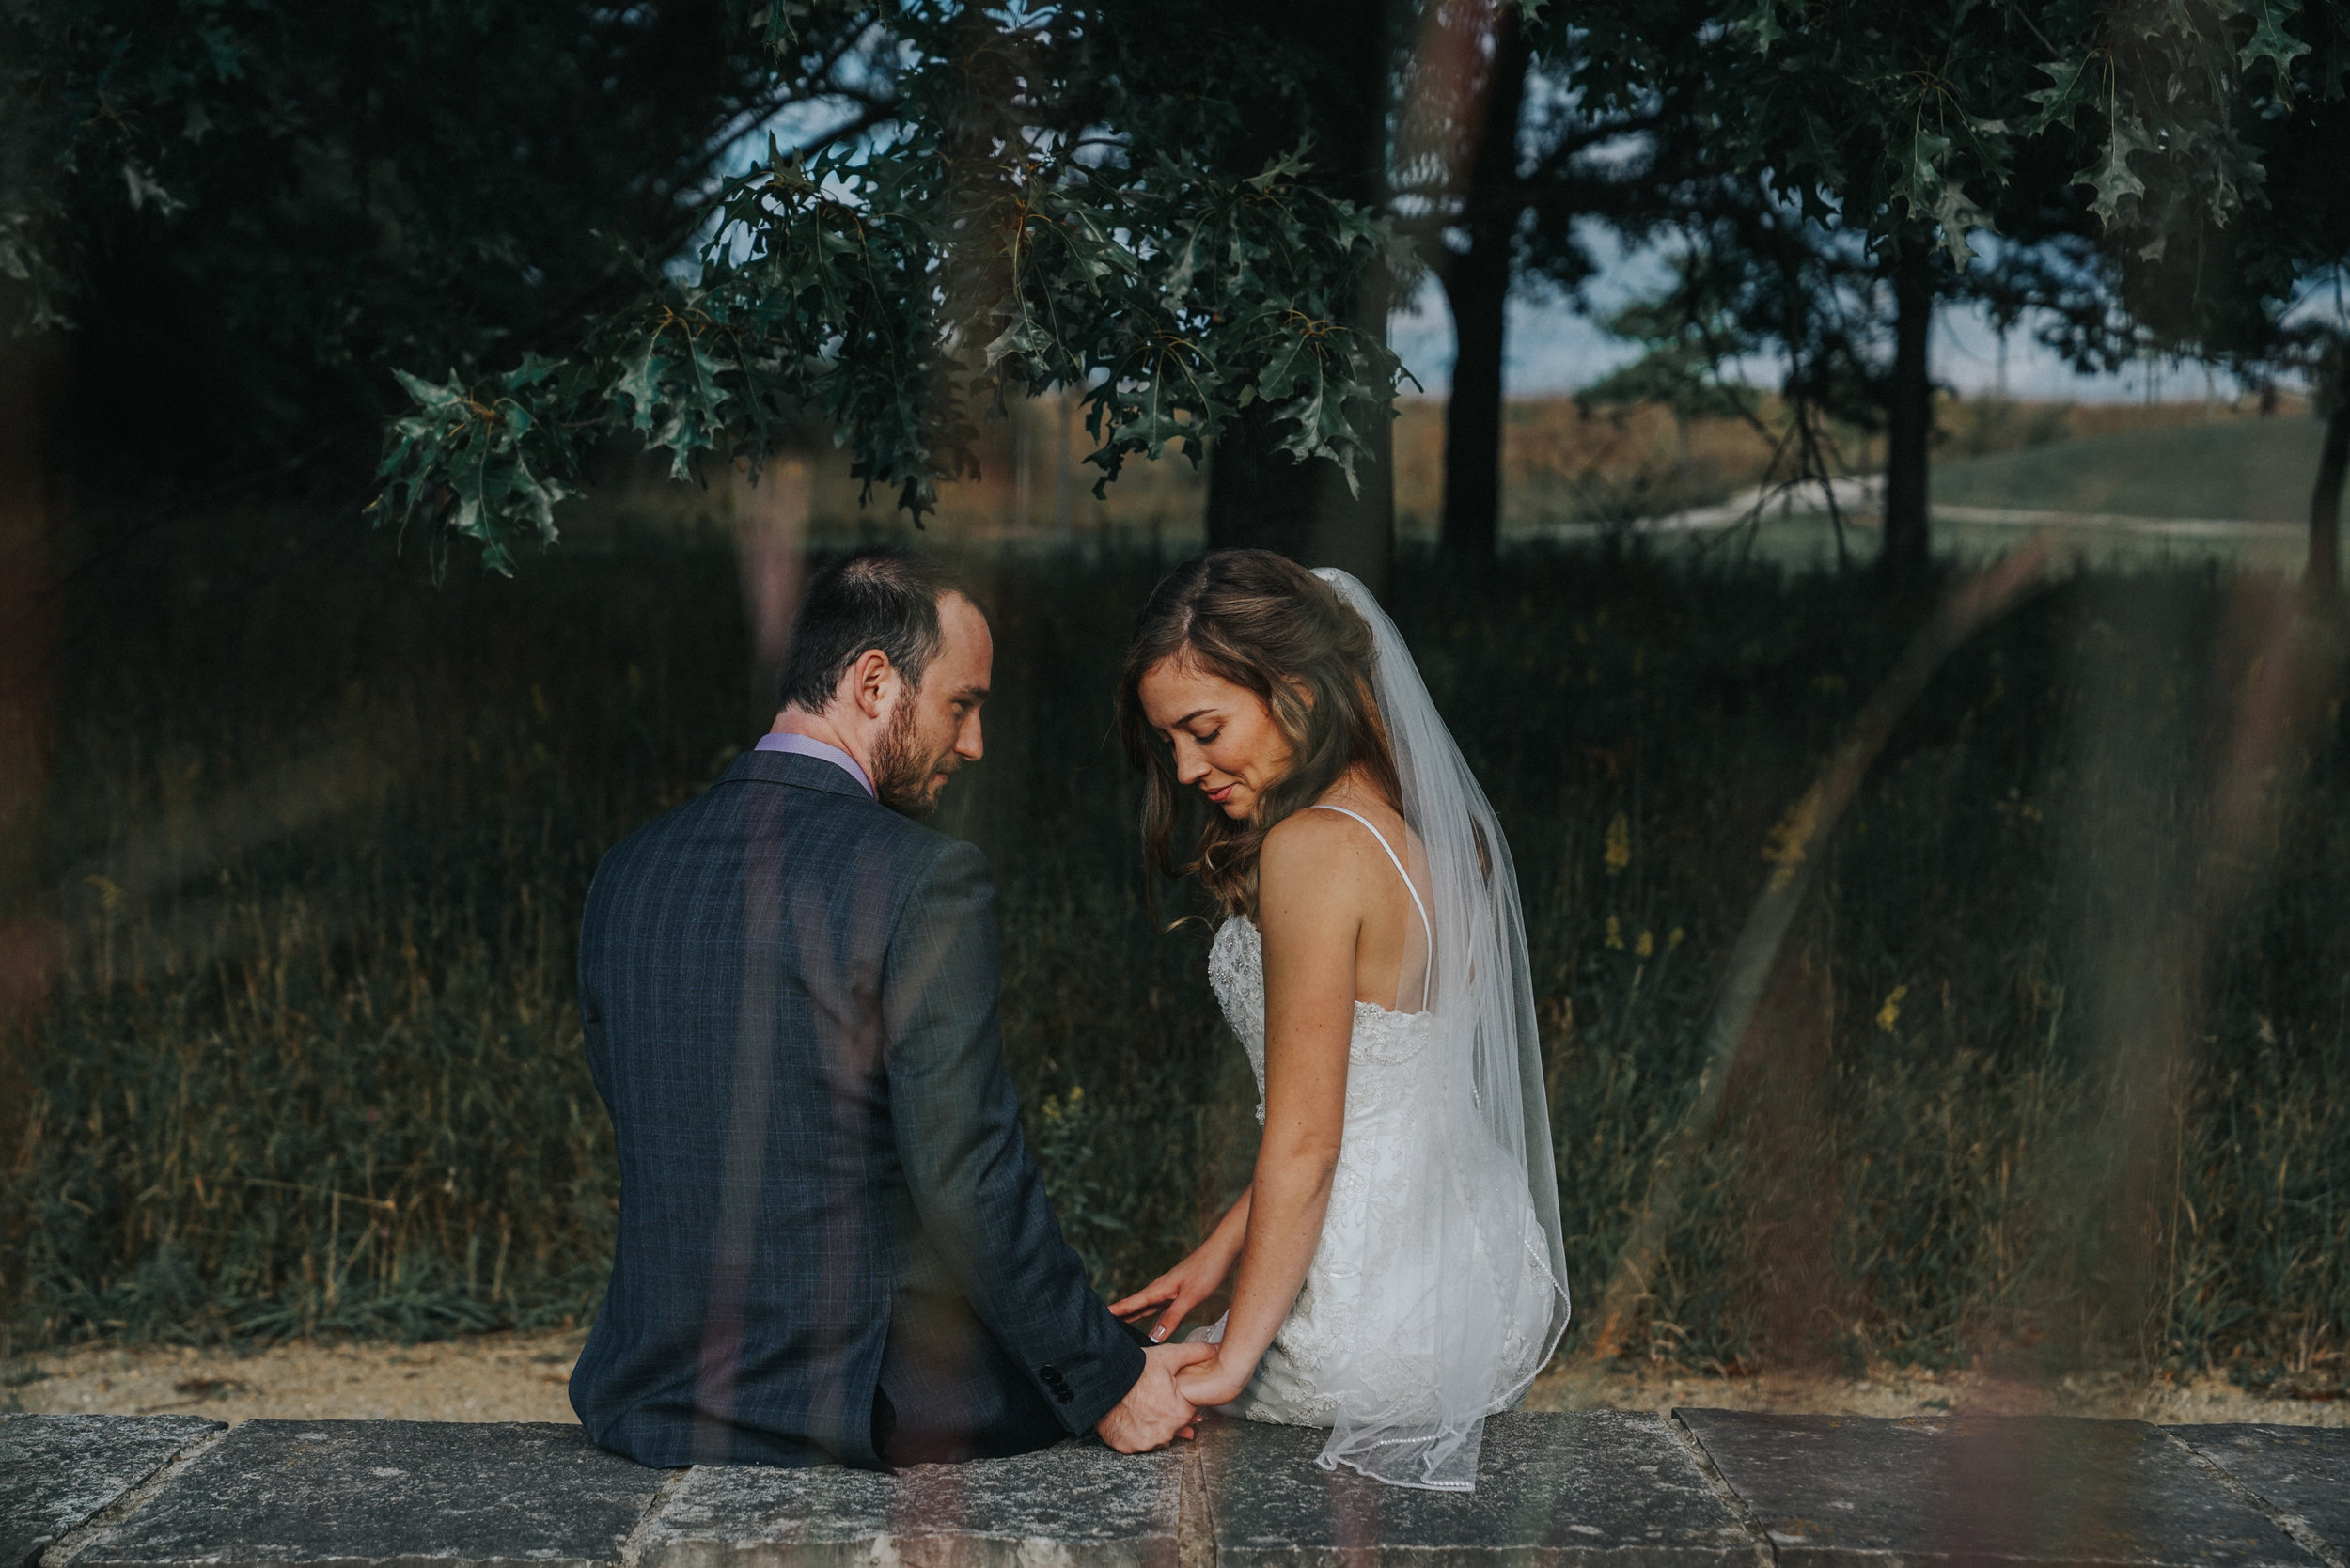 Intimate wedding at Indian Springs Metropark